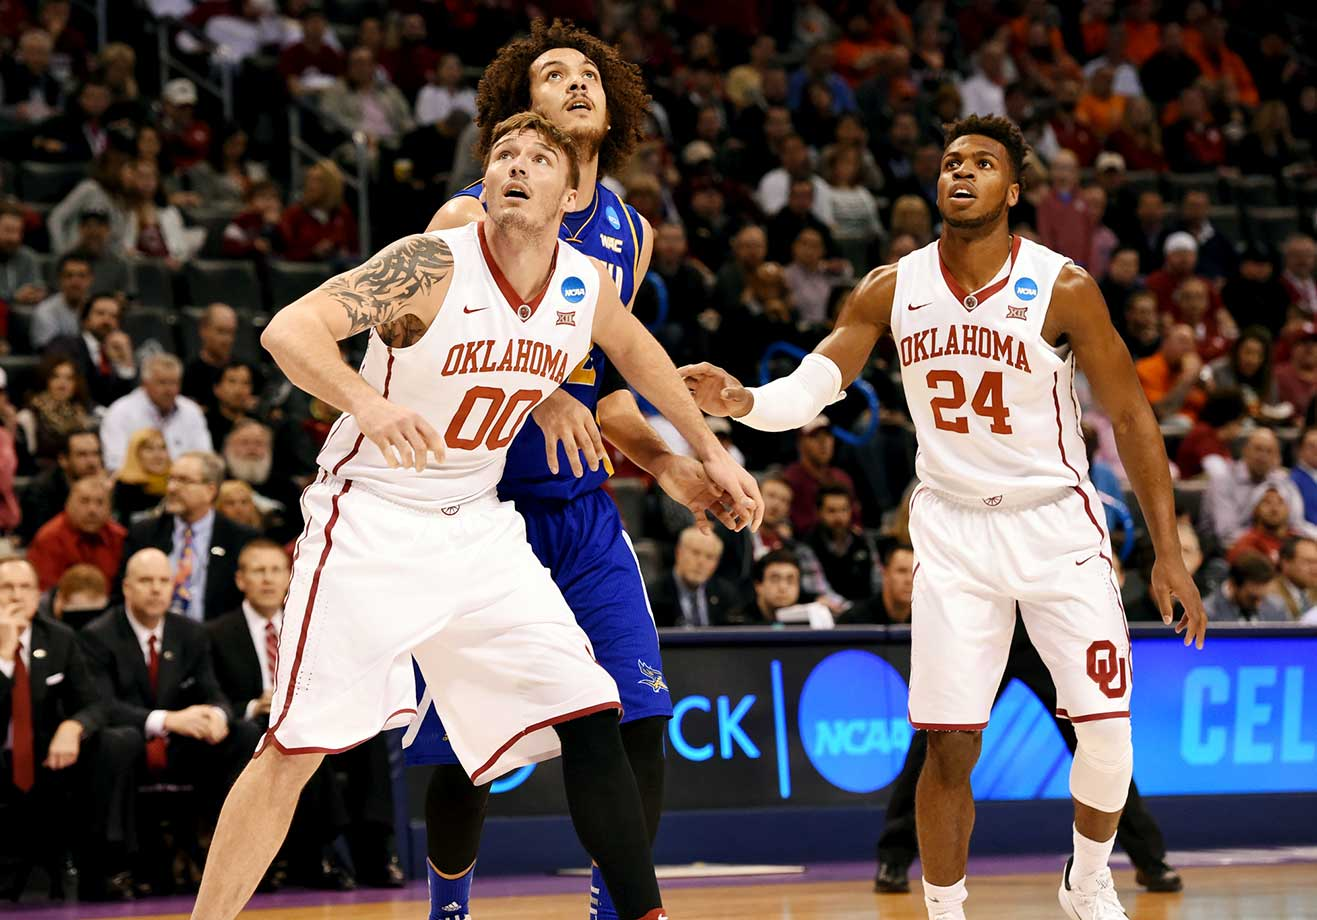 Ryan Spangler and teammate Buddy Hield box out Aly Ahmed of Cal State Bakersfield.